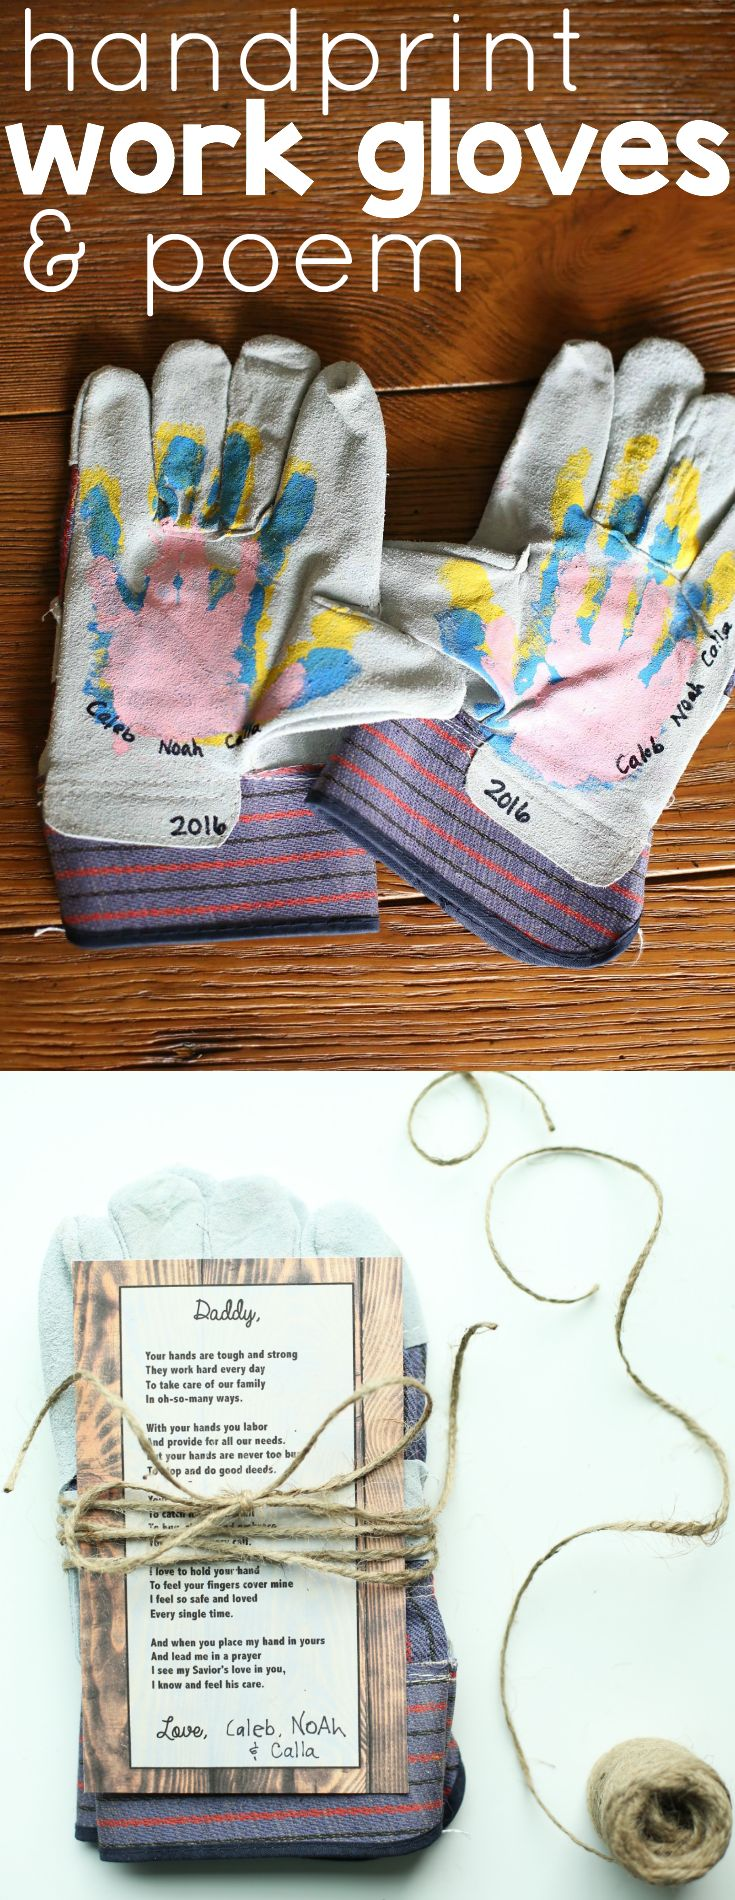 90 best fathers day ideas images on pinterest crafts for kids handprint work gloves and poem for fathers day solutioingenieria Image collections